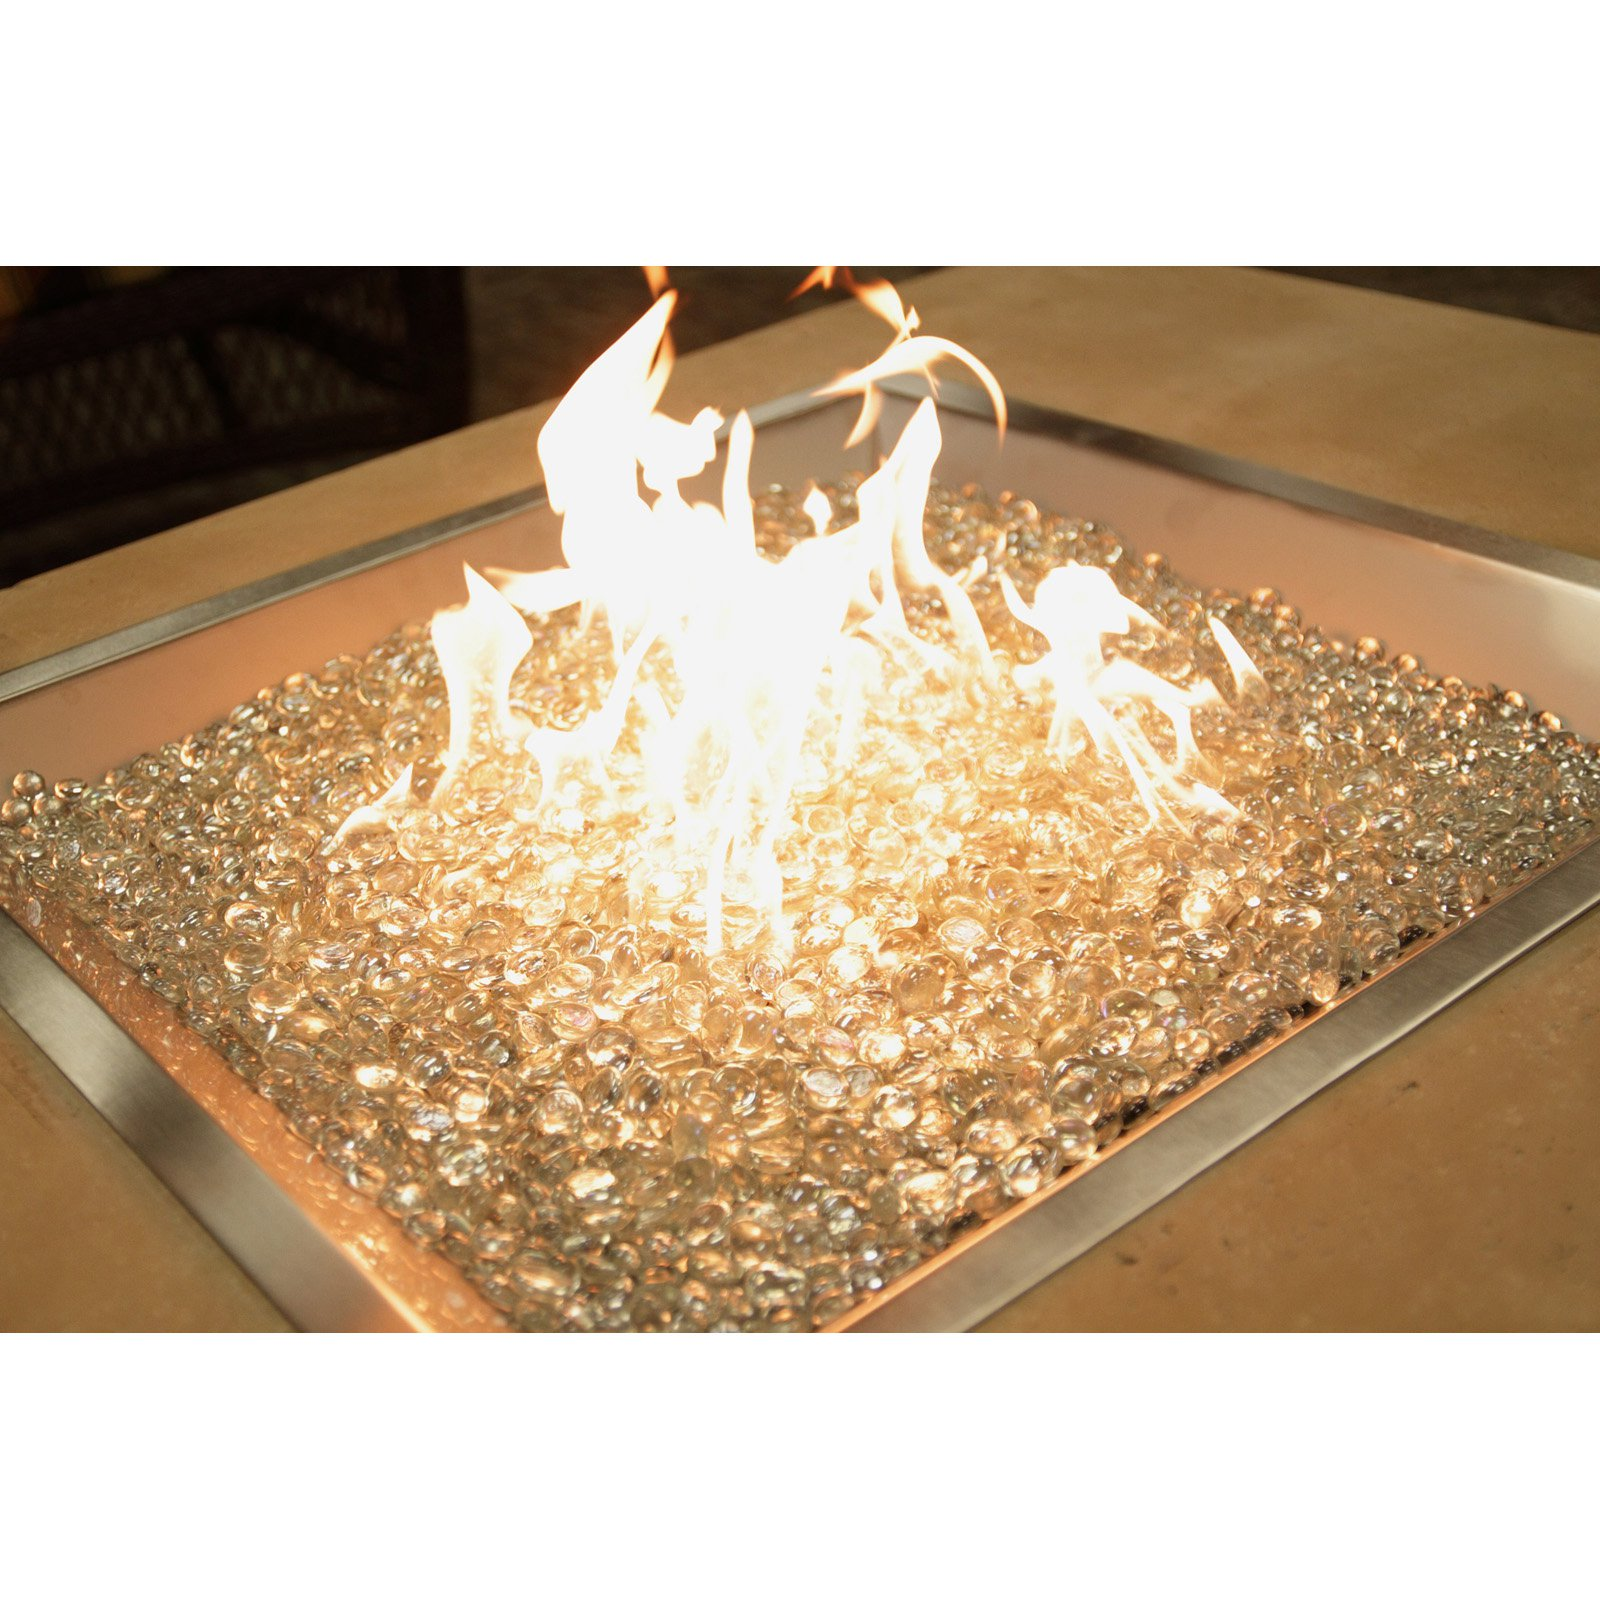 Outdoor GreatRoom 24 in. Square Burner with Glass Gems